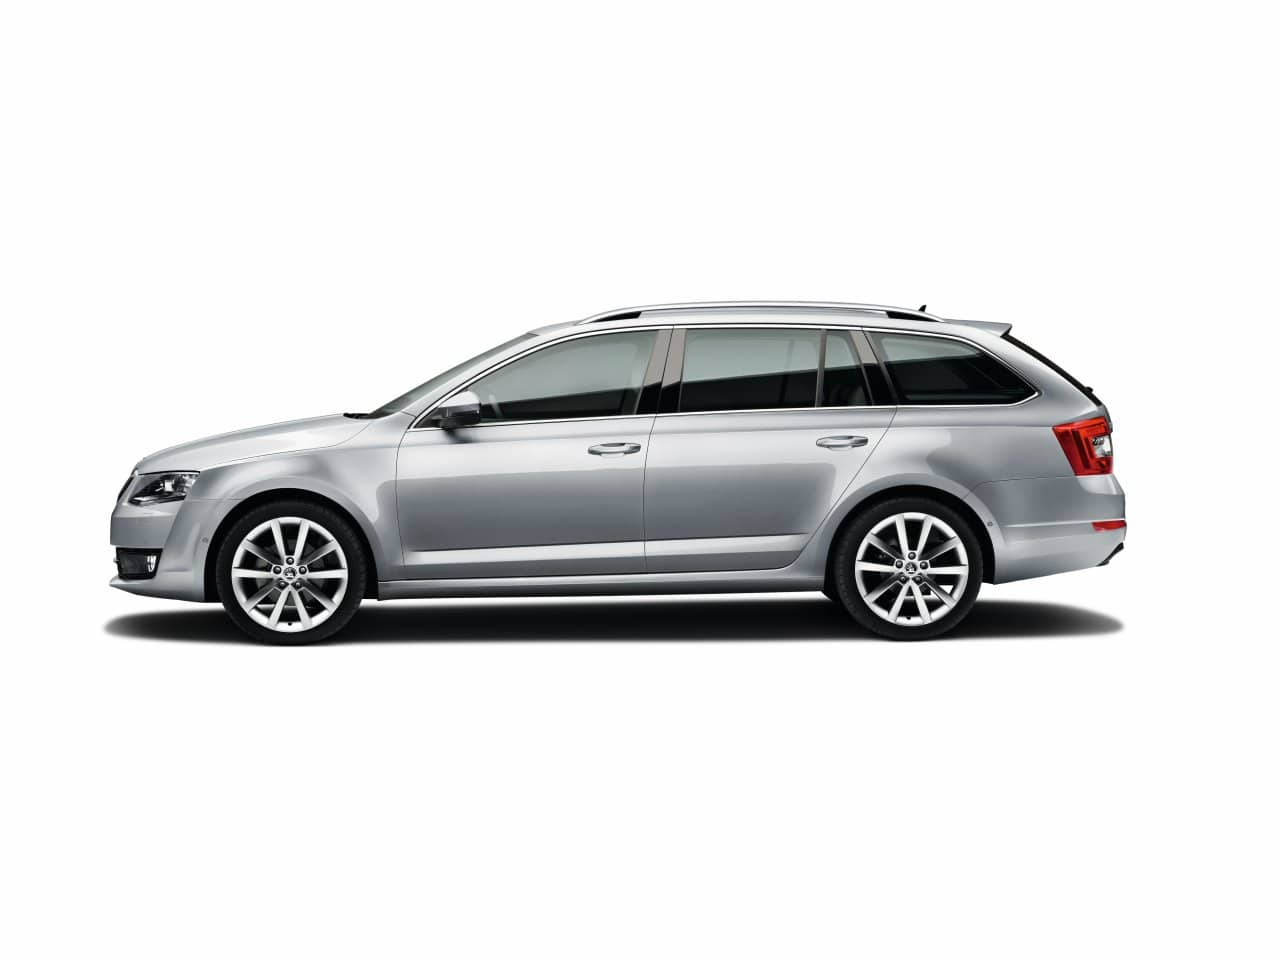 Skoda Octavia A7 Widescreen for desktop